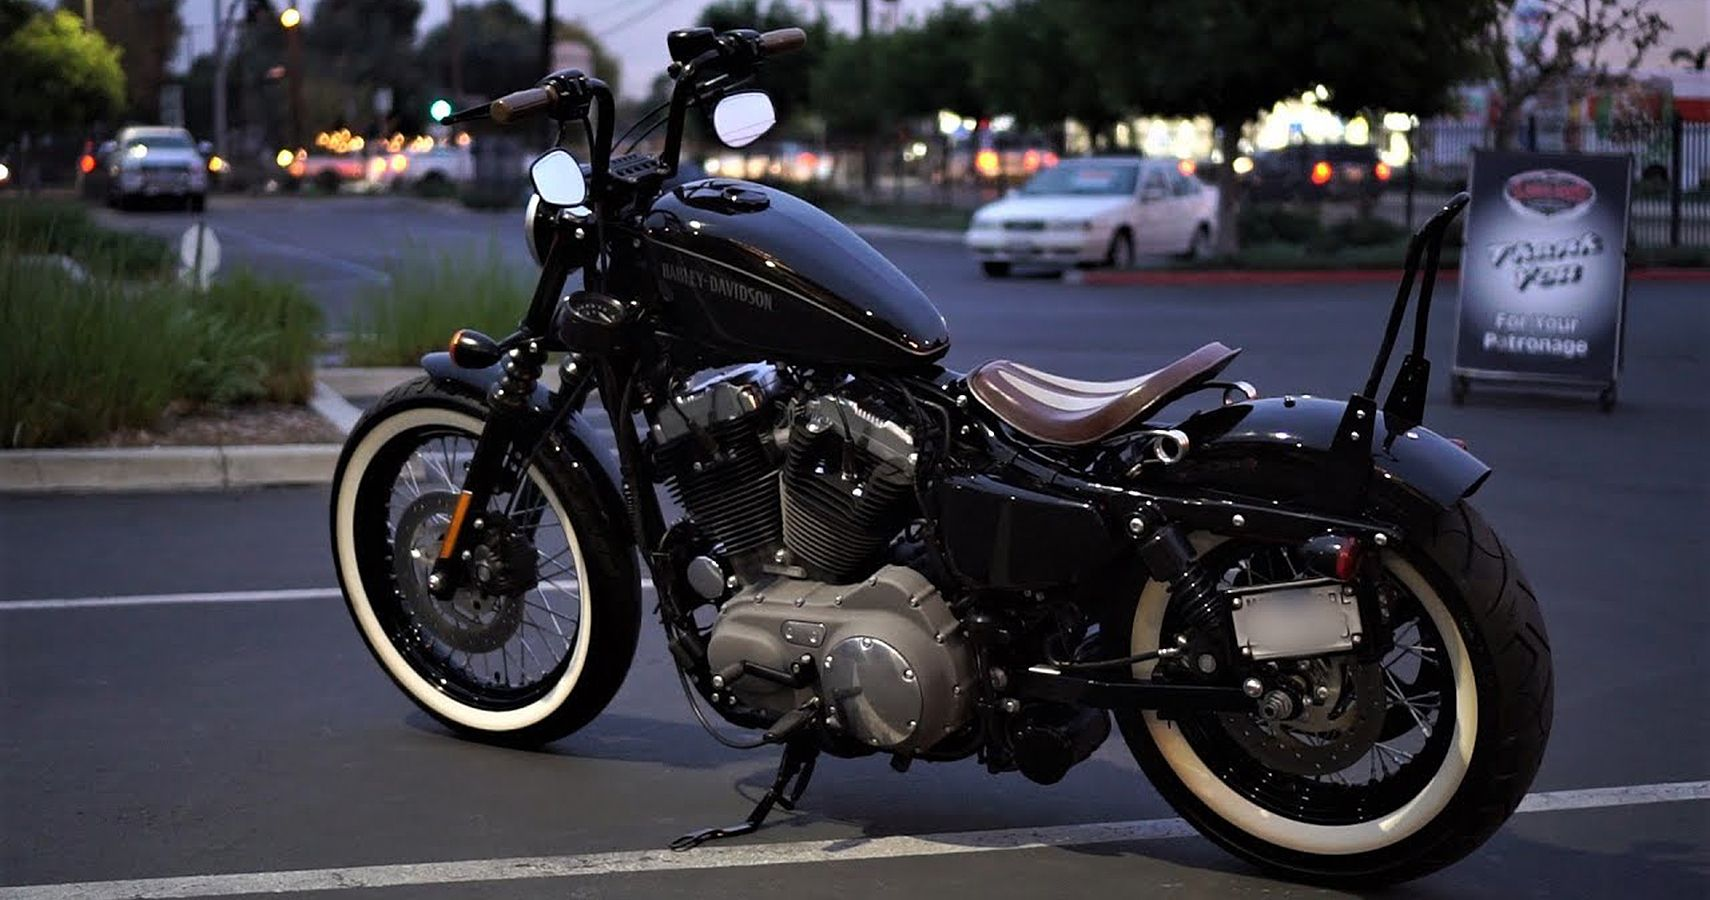 Here S What You Need To Know About The Harley Davidson Nightster Motorcycle